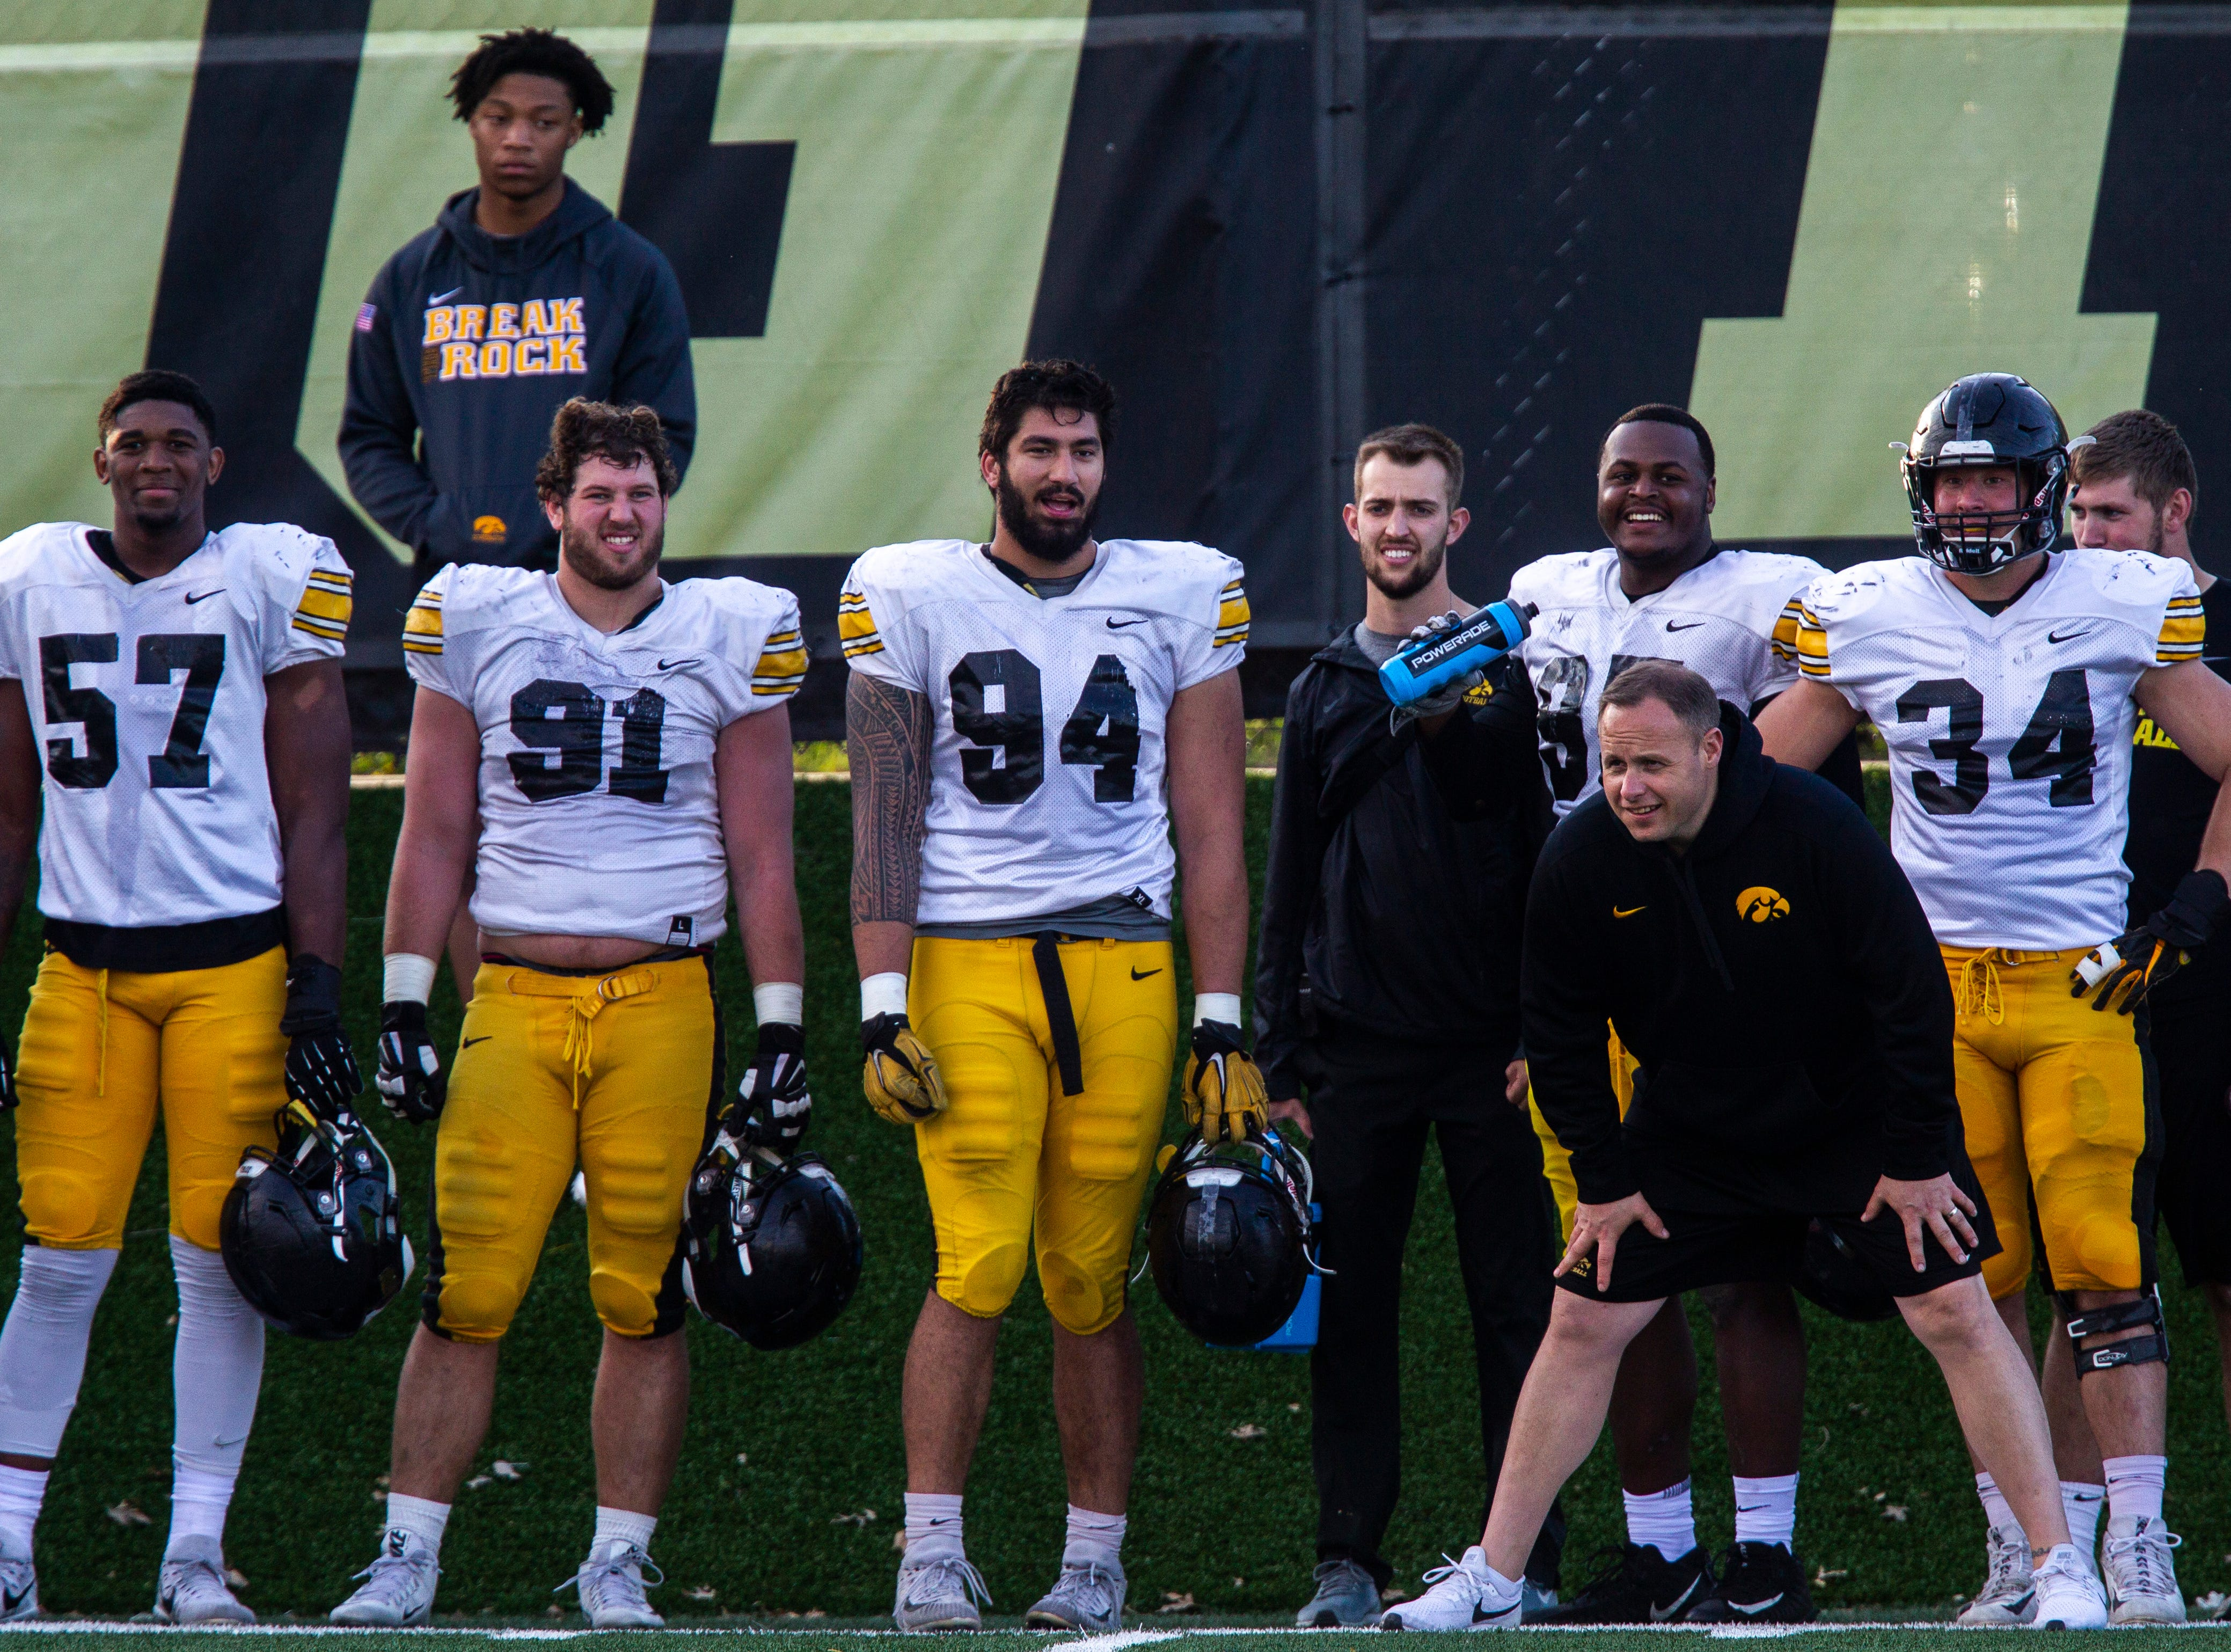 Iowa's Chauncey Golston, from left, Brady Reiff, A.J. Epenesa, Cedrick Lattimore and Kristian Welch stand on the sideline behind linebackers coach Seth Wallace during the final spring football practice, Friday, April 26, 2019, at the University of Iowa outdoor practice facility in Iowa City, Iowa.